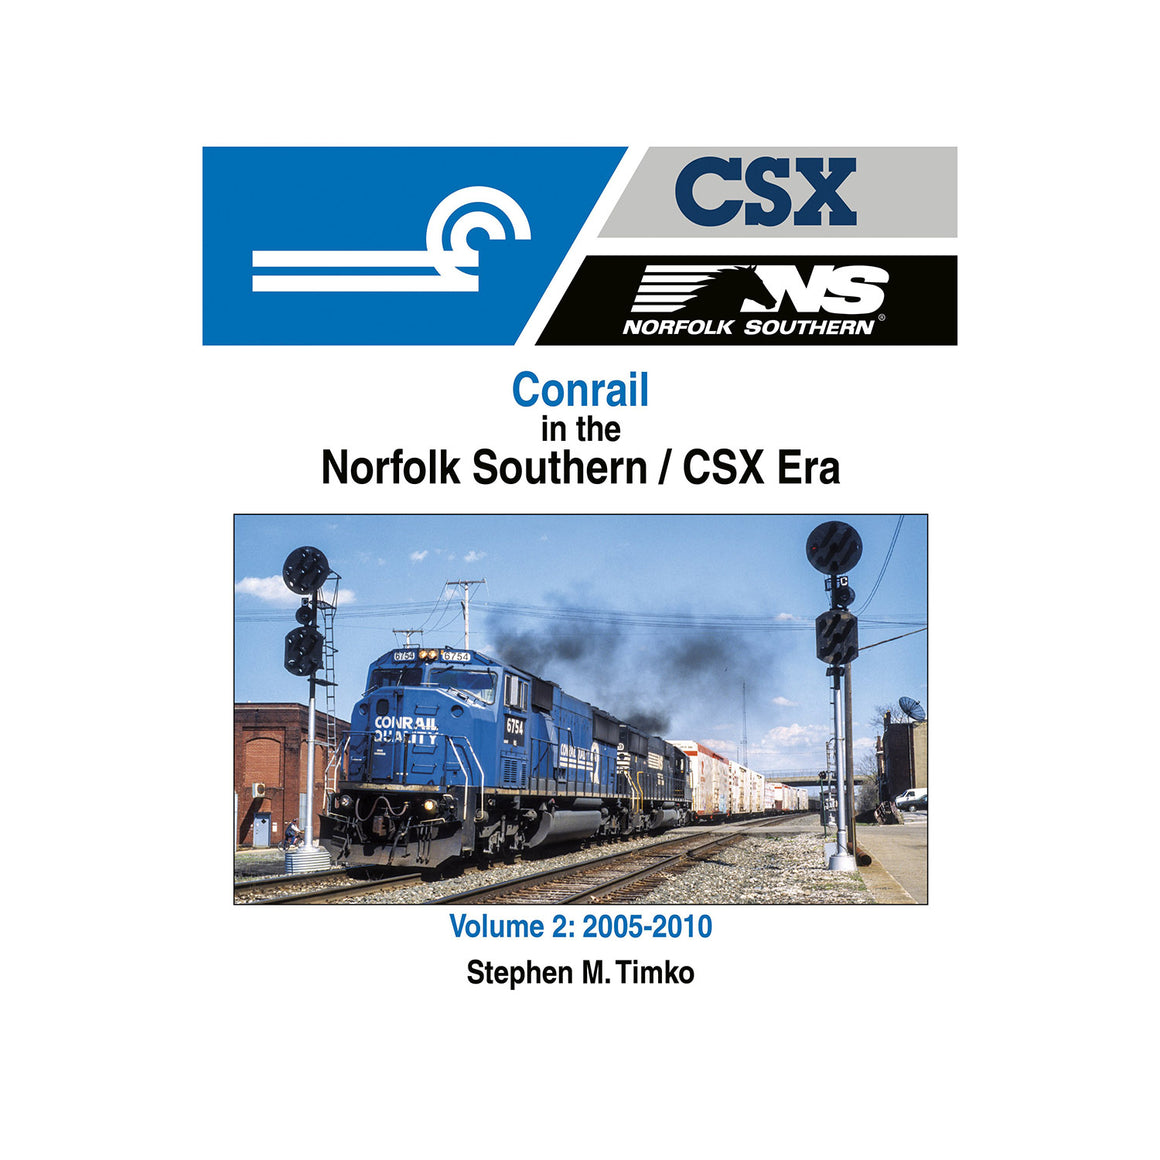 Books: Conrail in the Norfolk Southern/CSX Era - Volume 2: 2005-2010